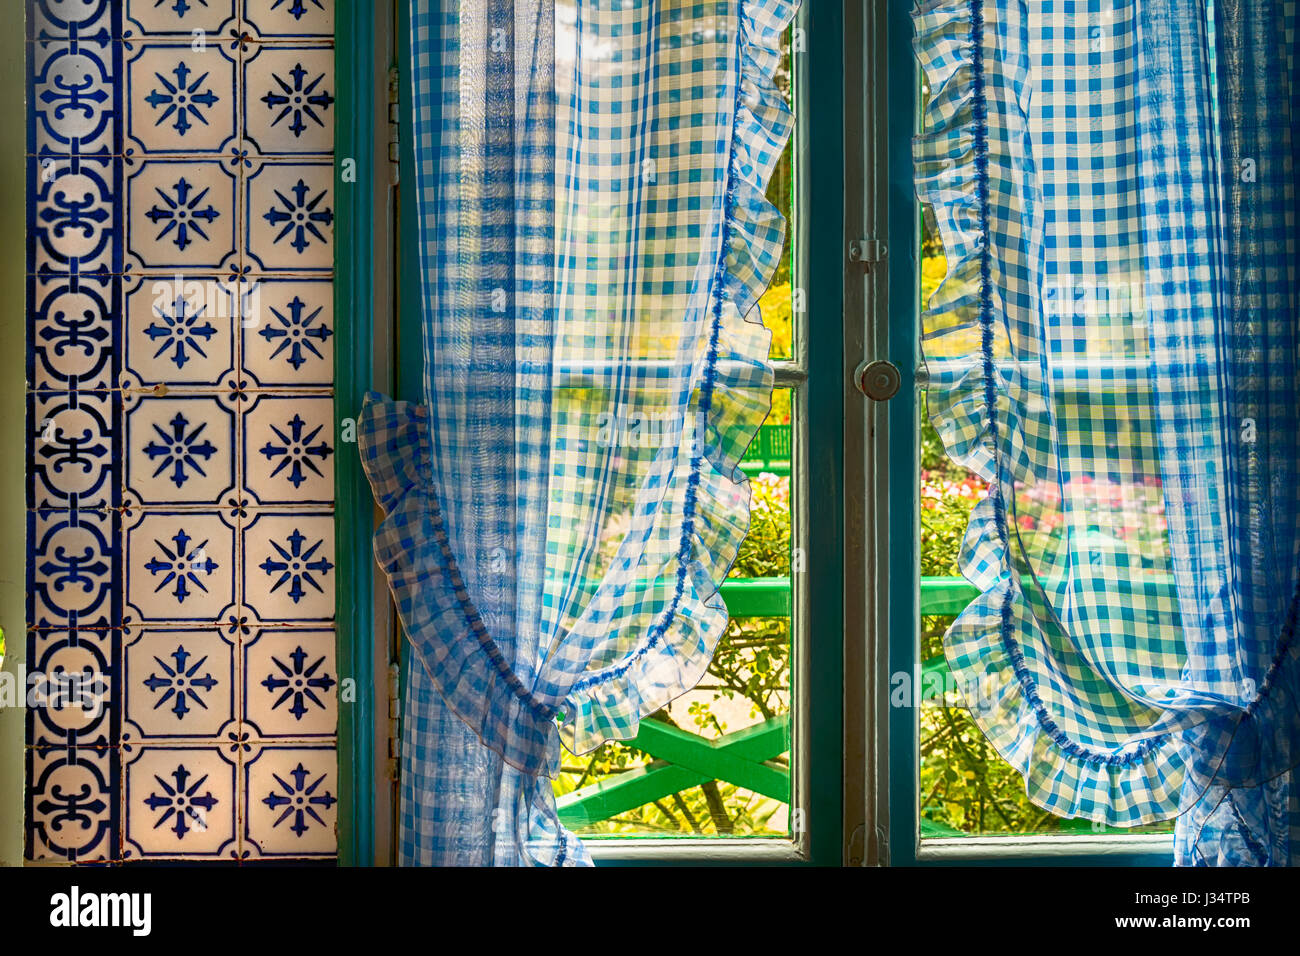 Kitchen Curtains Stock Photos & Kitchen Curtains Stock Images - Alamy